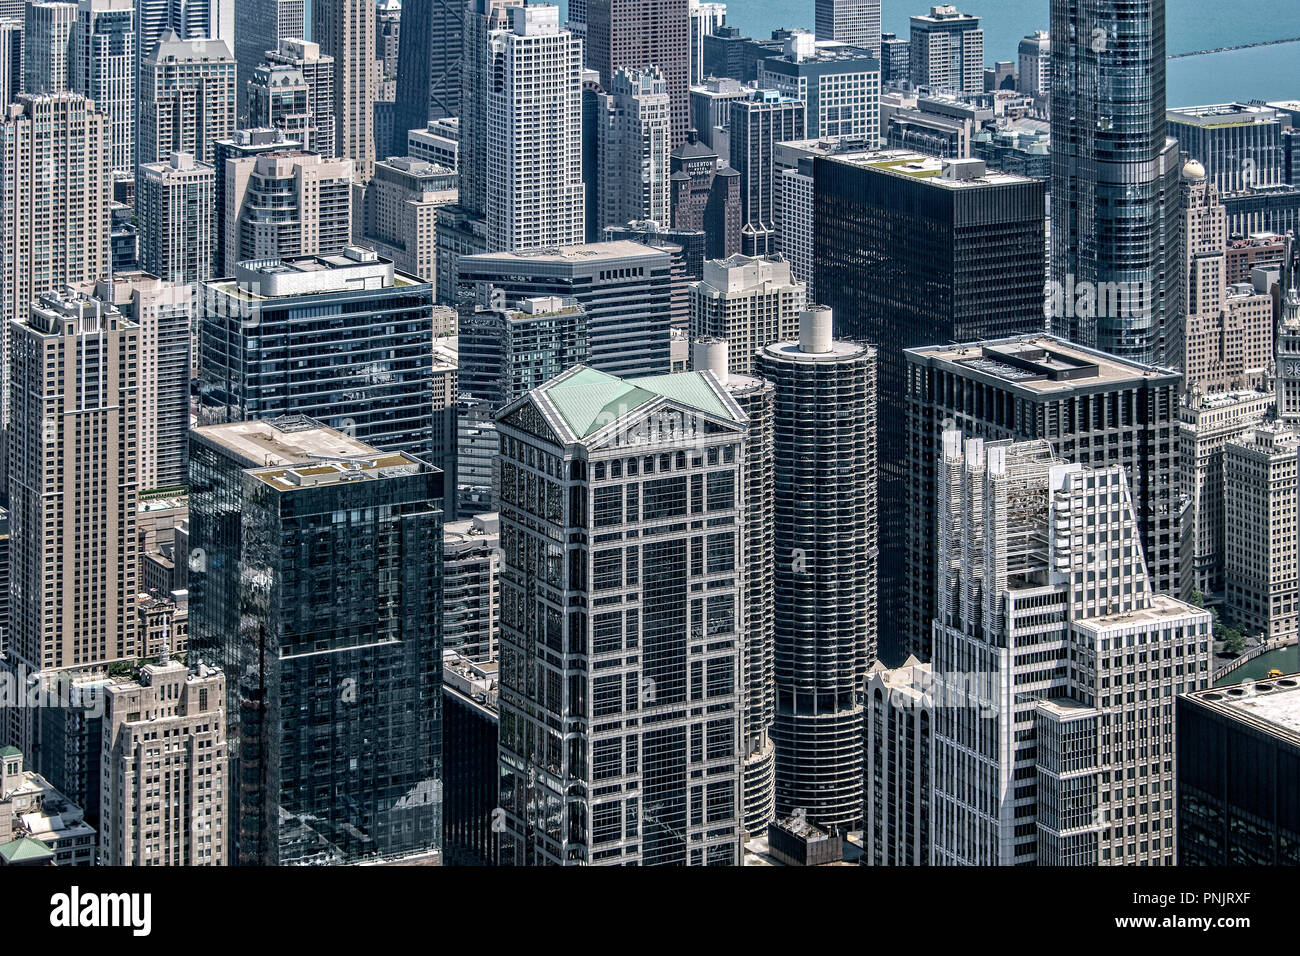 View of skyscrapers with Marina Towers from the Willis Tower Skydeck, 103rd Floor, Downtown, Chicago, IL. - Stock Image